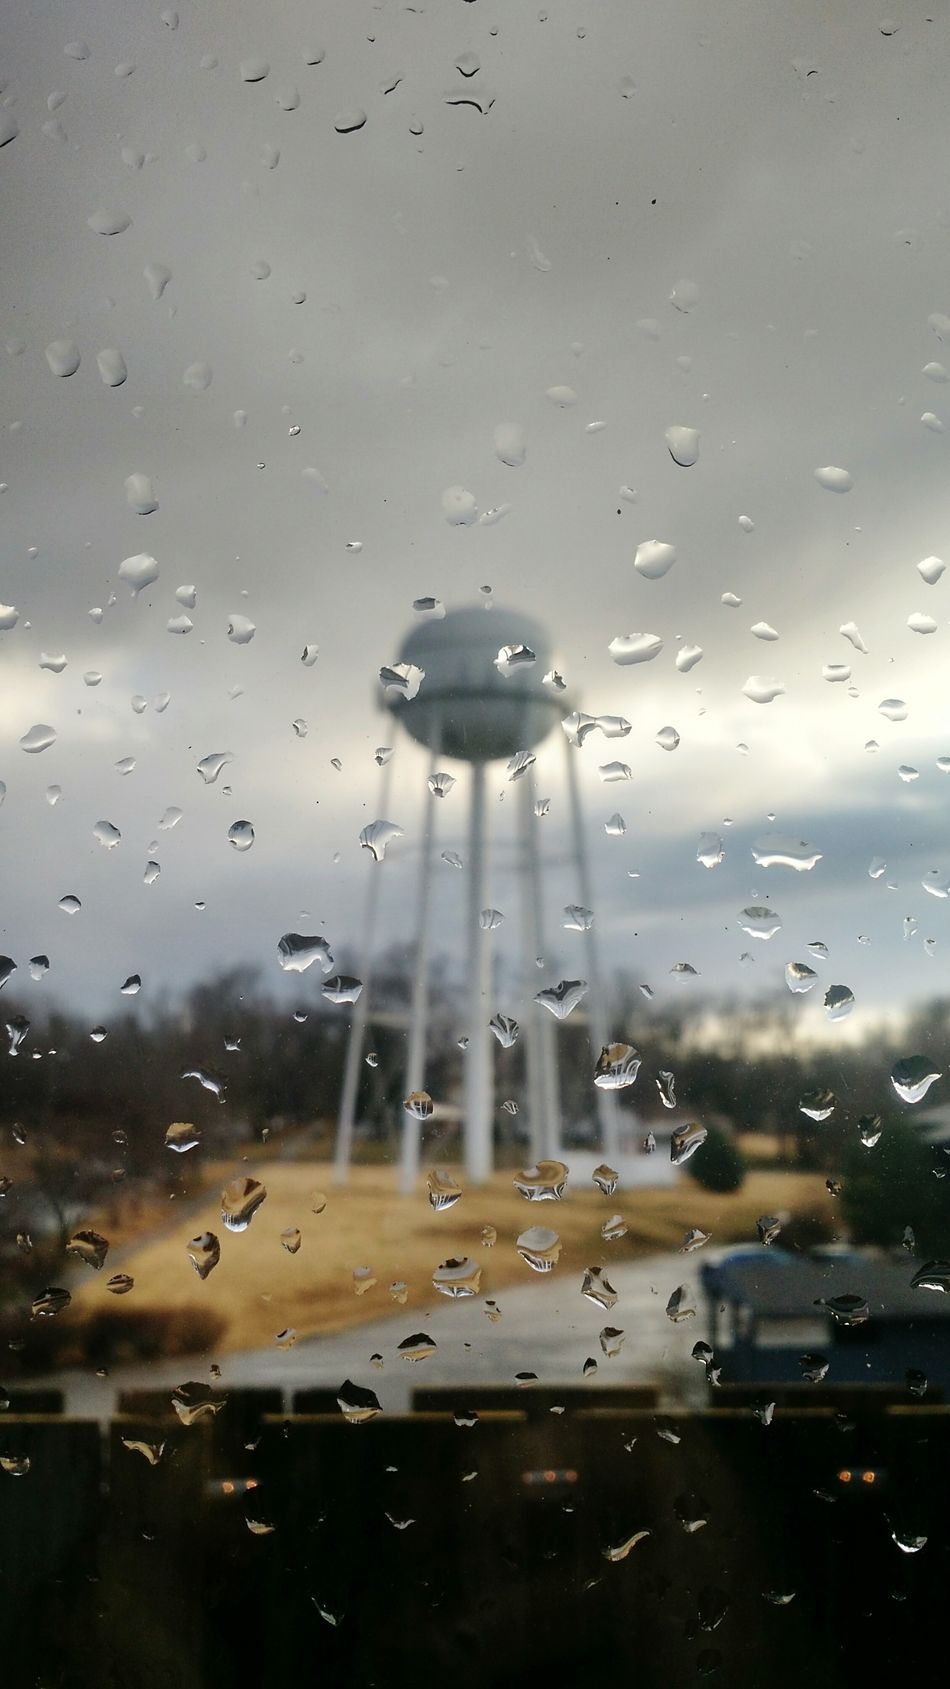 Water Droplets Cloud - Sky Wet Rainy Season Cold Temperature Small Town Small Town USA Small Town Landscape Small Town Stories Water Tower Pics Water Tower Water Tower Town Water Towers Winter Sky Window Focus On Foreground Glass Windows Complementary Colors Looking Through Window Raindrops On My Window Pane Rain On Glass Midwest Weather Winter Rain Transparent